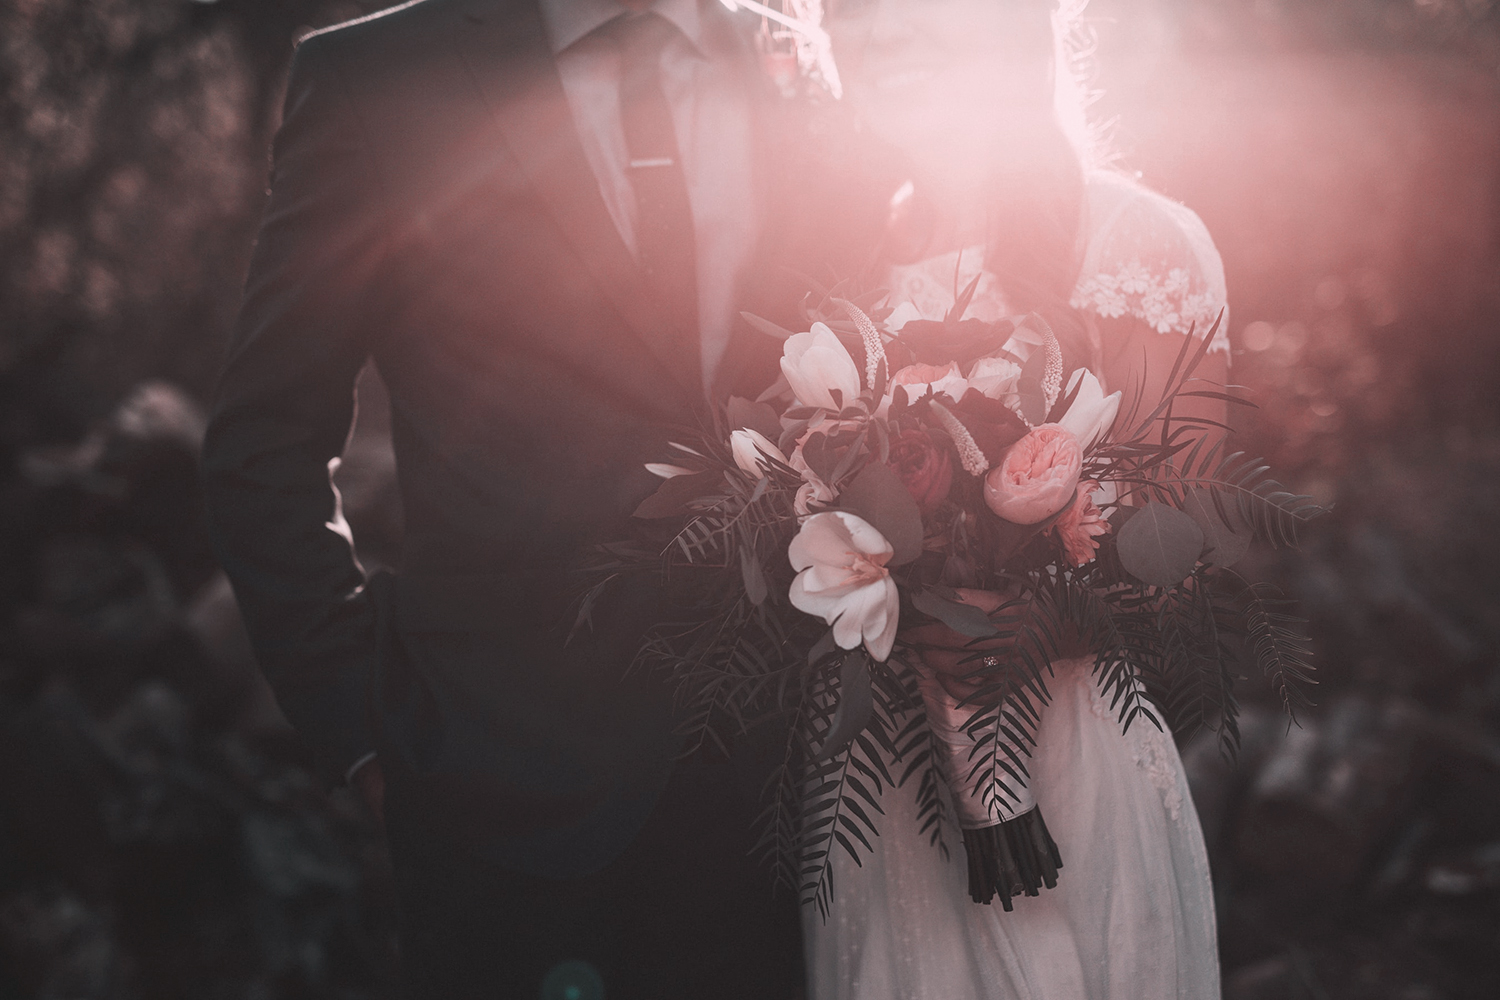 Rose Gold Wedding Theme For The Most Romantic Fall Ceremony by Liz Breygel on January Girl blog